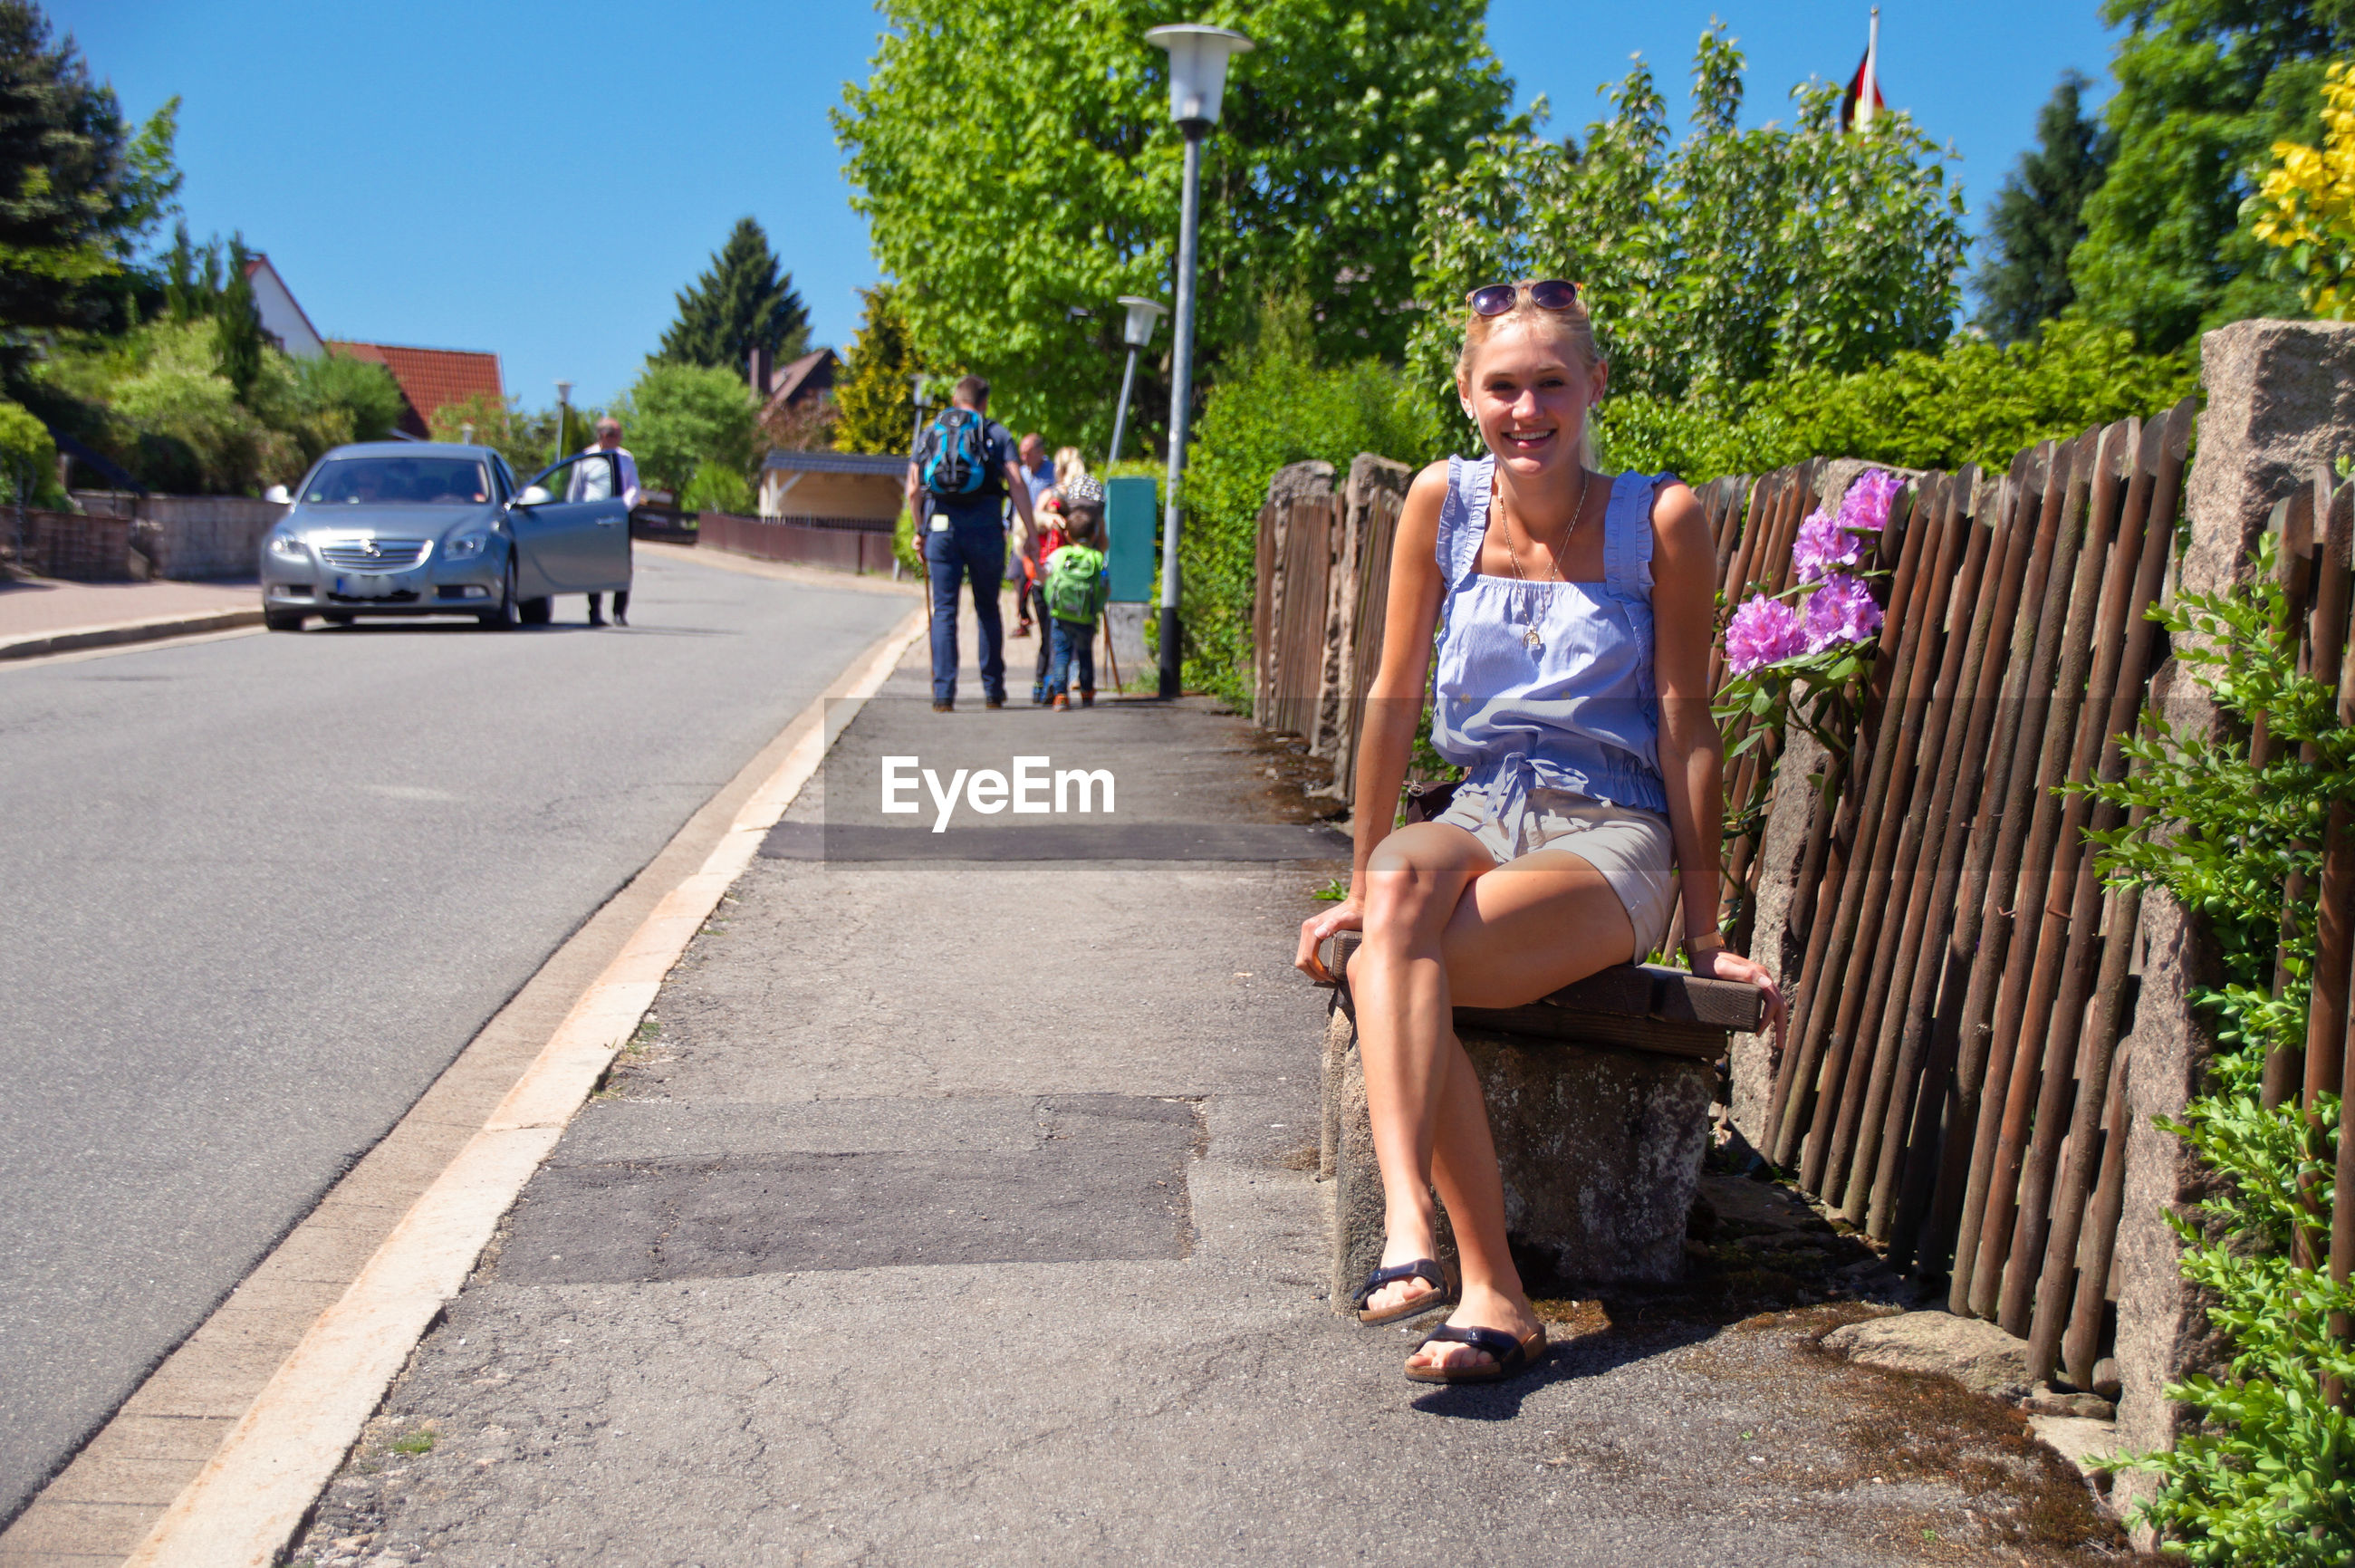 Full length portrait of young woman on seat at roadside during sunny day